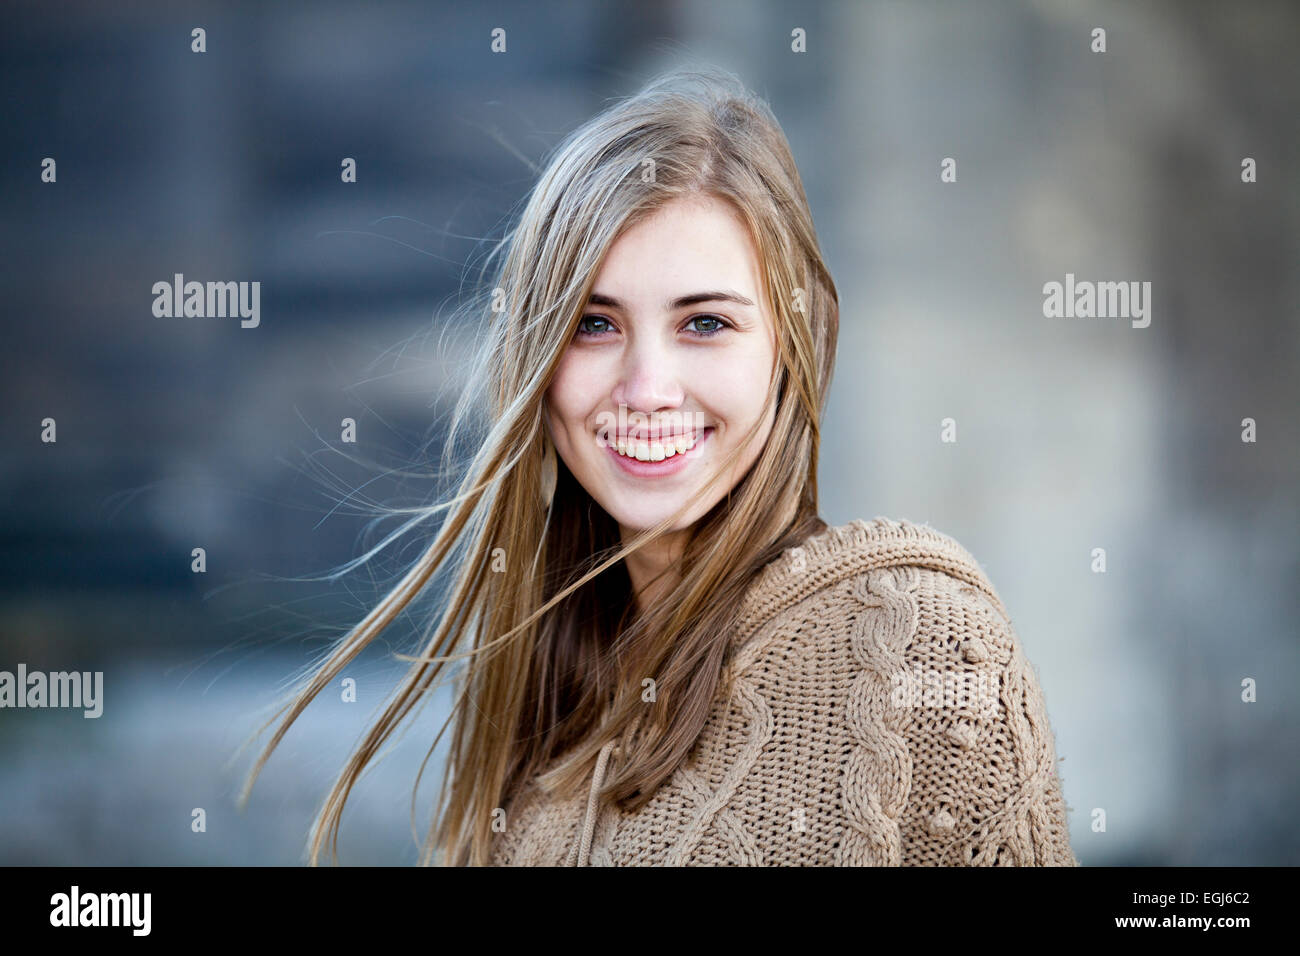 Portrait of a young woman, smile, beaming with joy - Stock Image